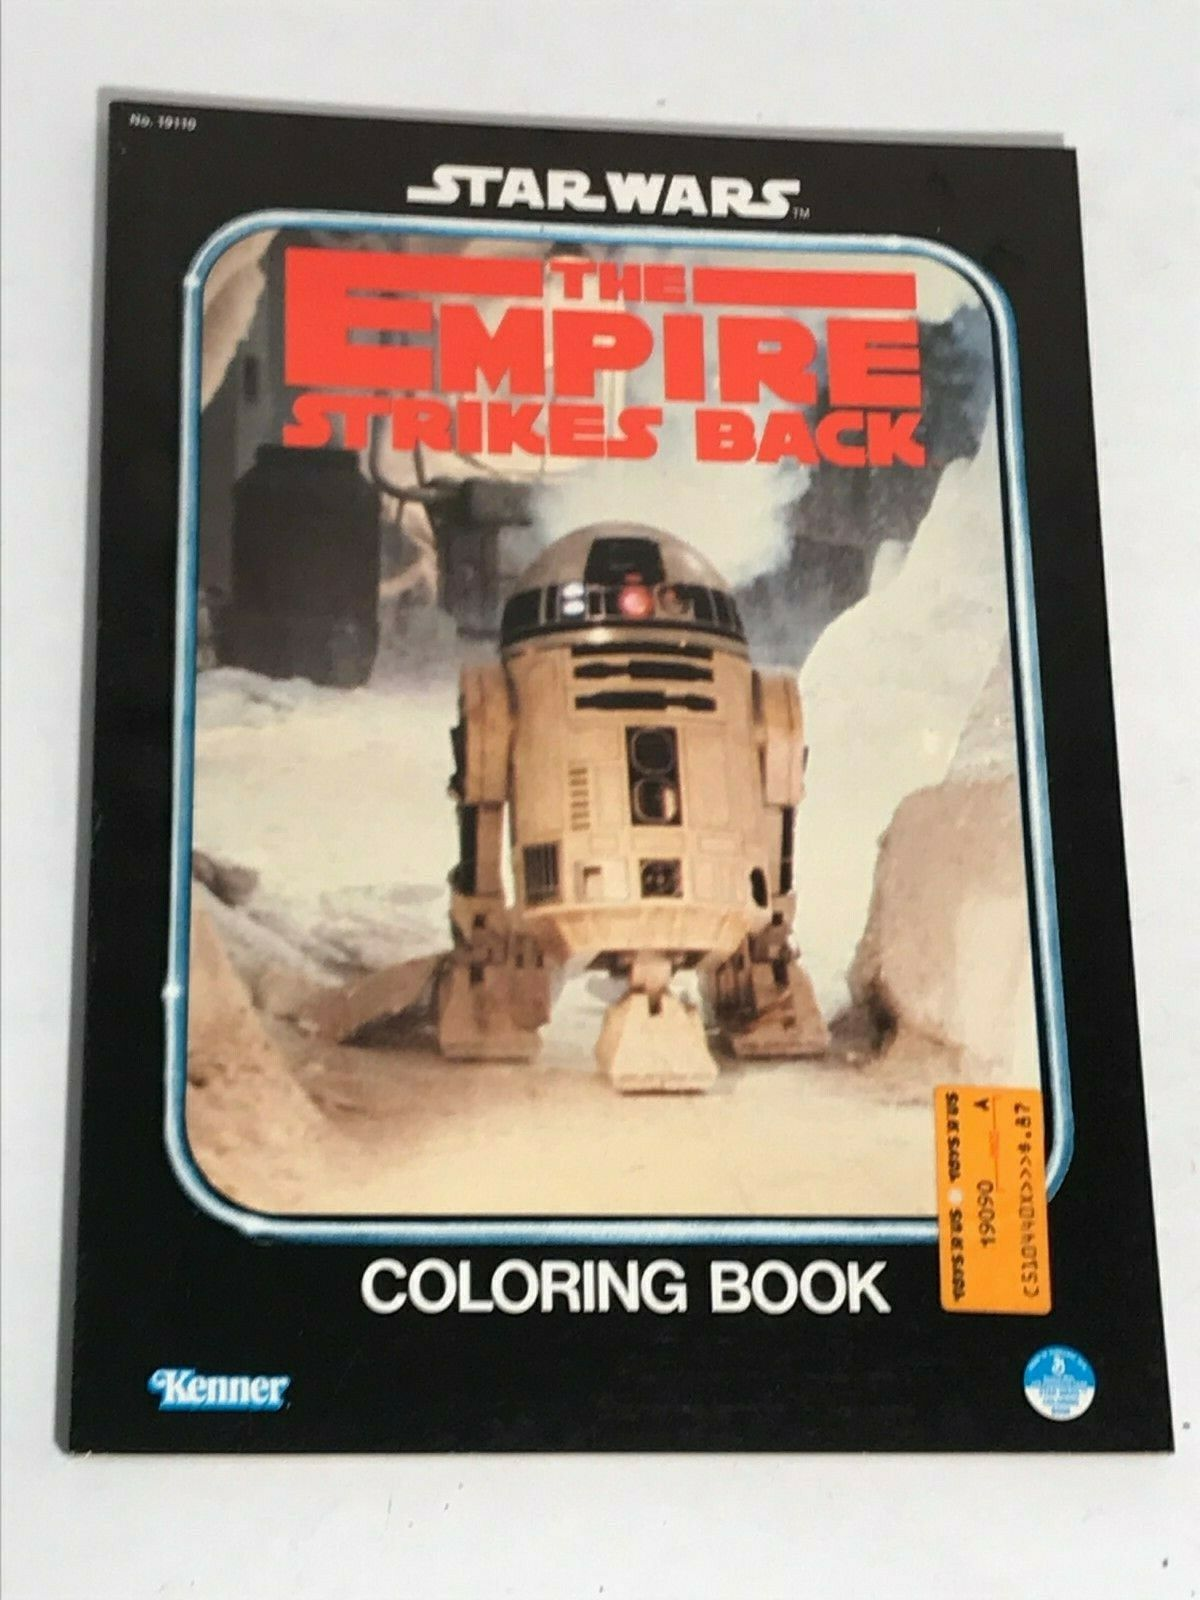 Star Wars: The Empire Strikes Back Coloring Book (R2D2)